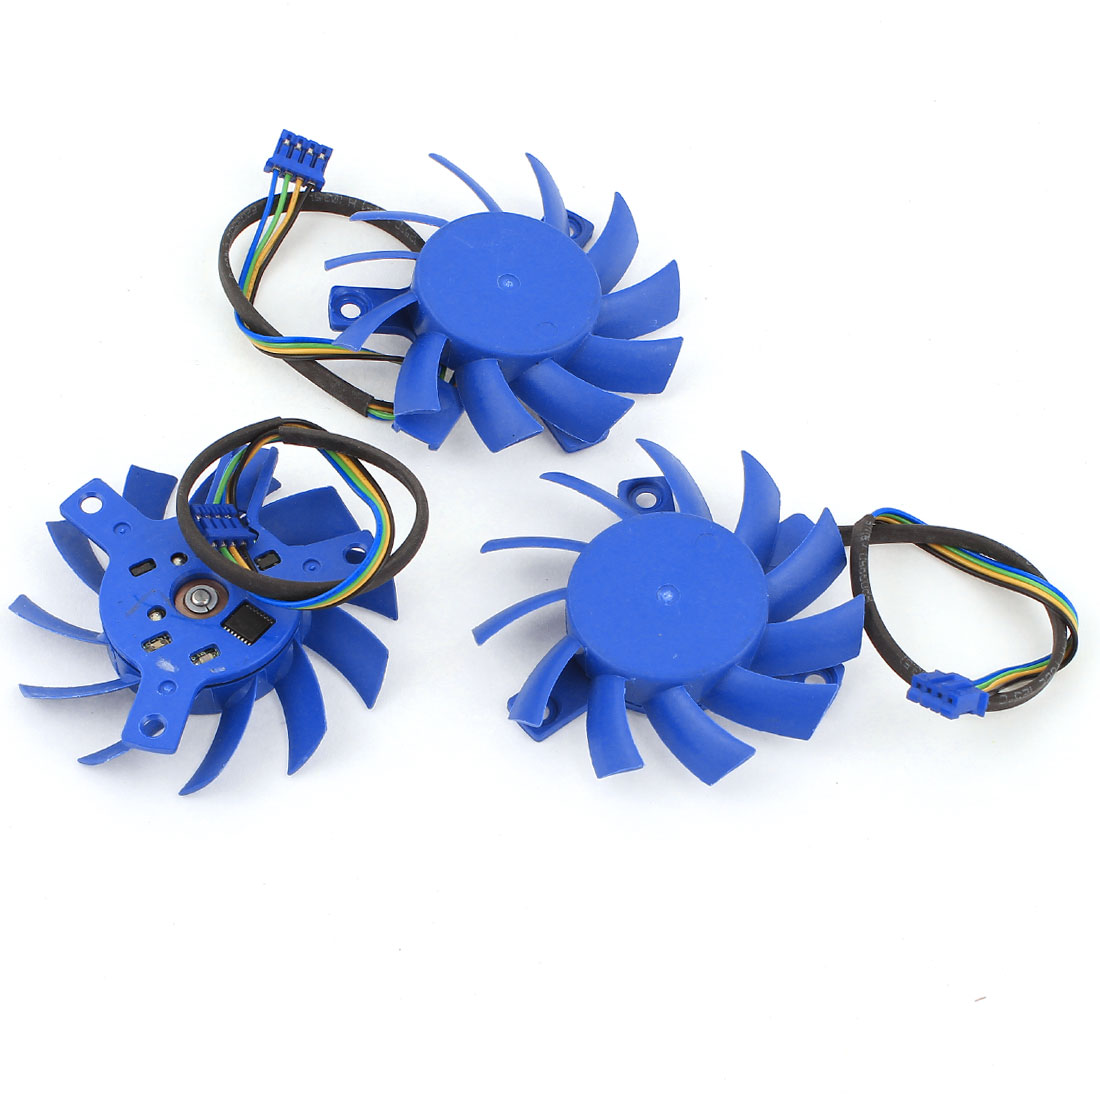 3 Pieces 55mm Blue PC Computer VGA Video Card Cooling Fan Cooler DC 12V